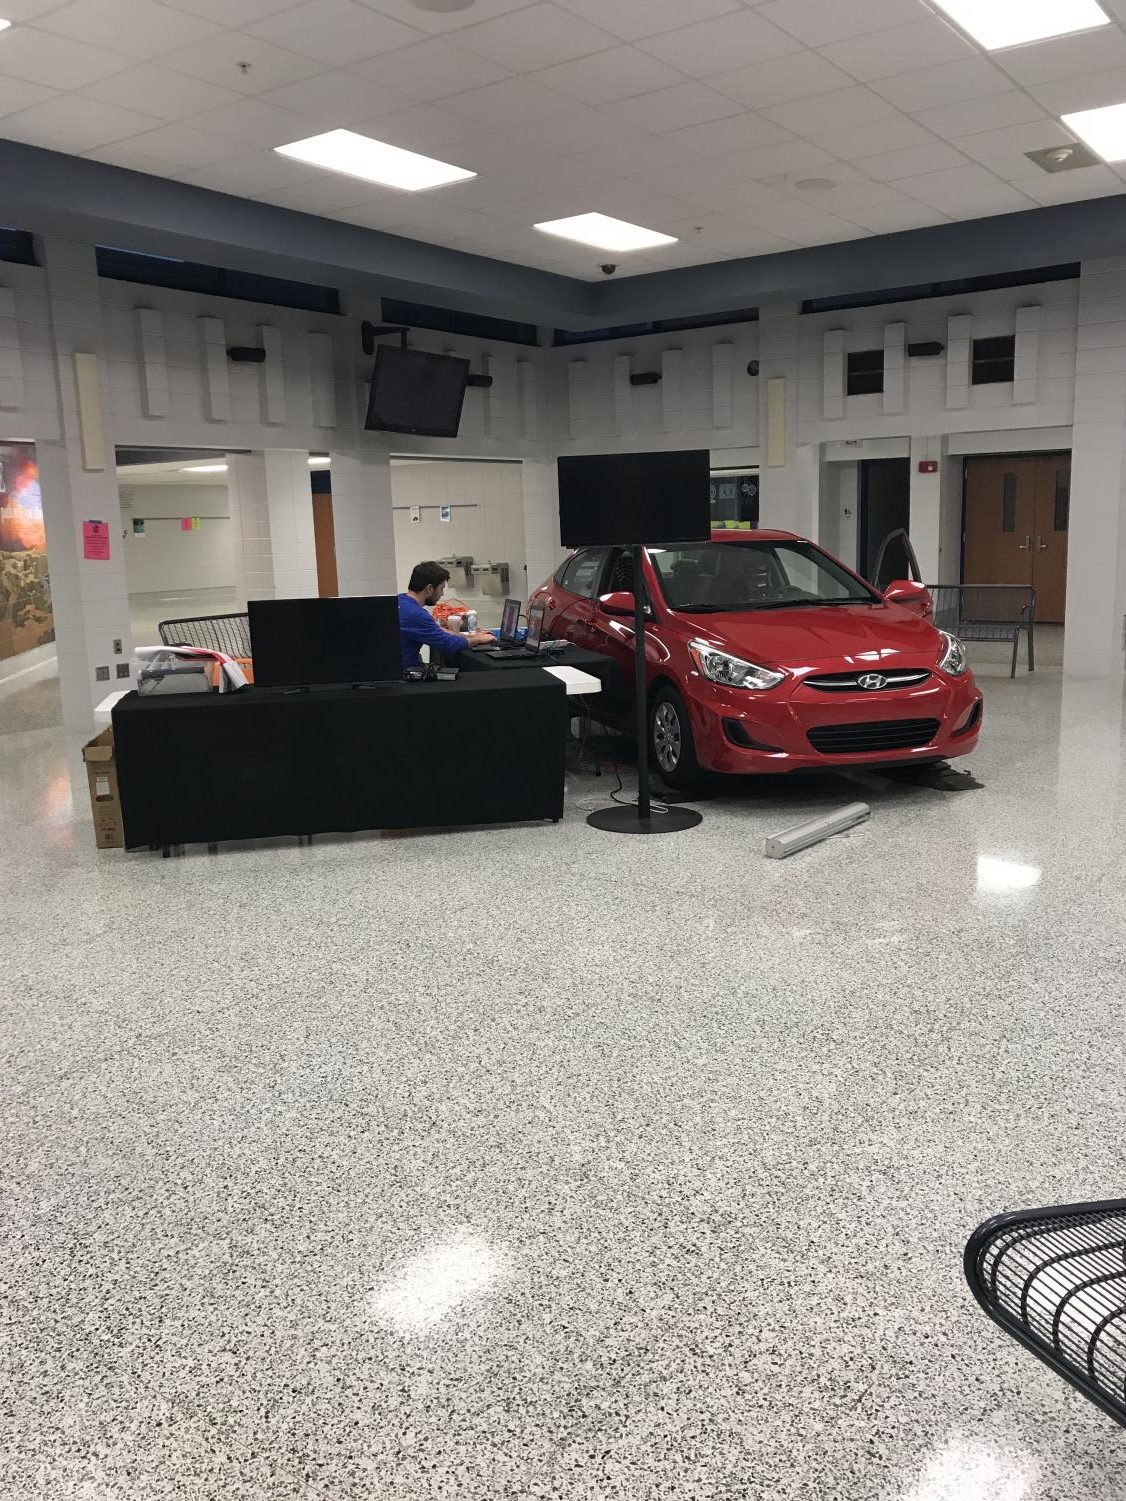 PEERs brought a Chevy into the commons in October to help students understand the dangers of distracted driving. The PEERs Foundation, which provides the simulations, is based in Grand Rapids. PEERs stands for Professionals Encouraging Education Reform.